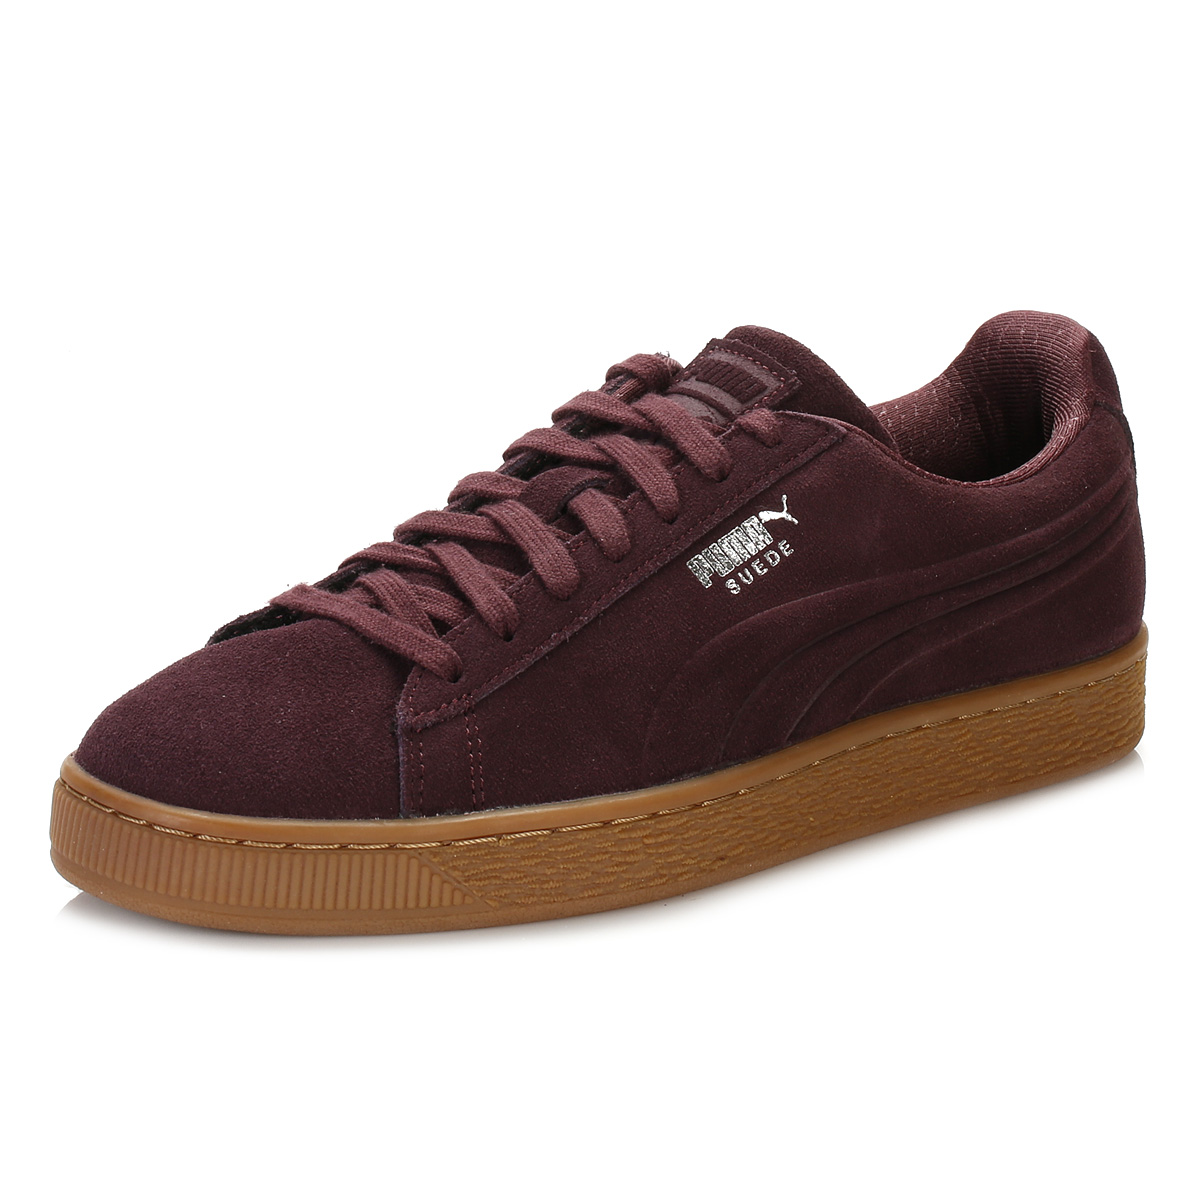 puma mens trainers wine red suede classic debossed lace up sport casual shoes ebay. Black Bedroom Furniture Sets. Home Design Ideas